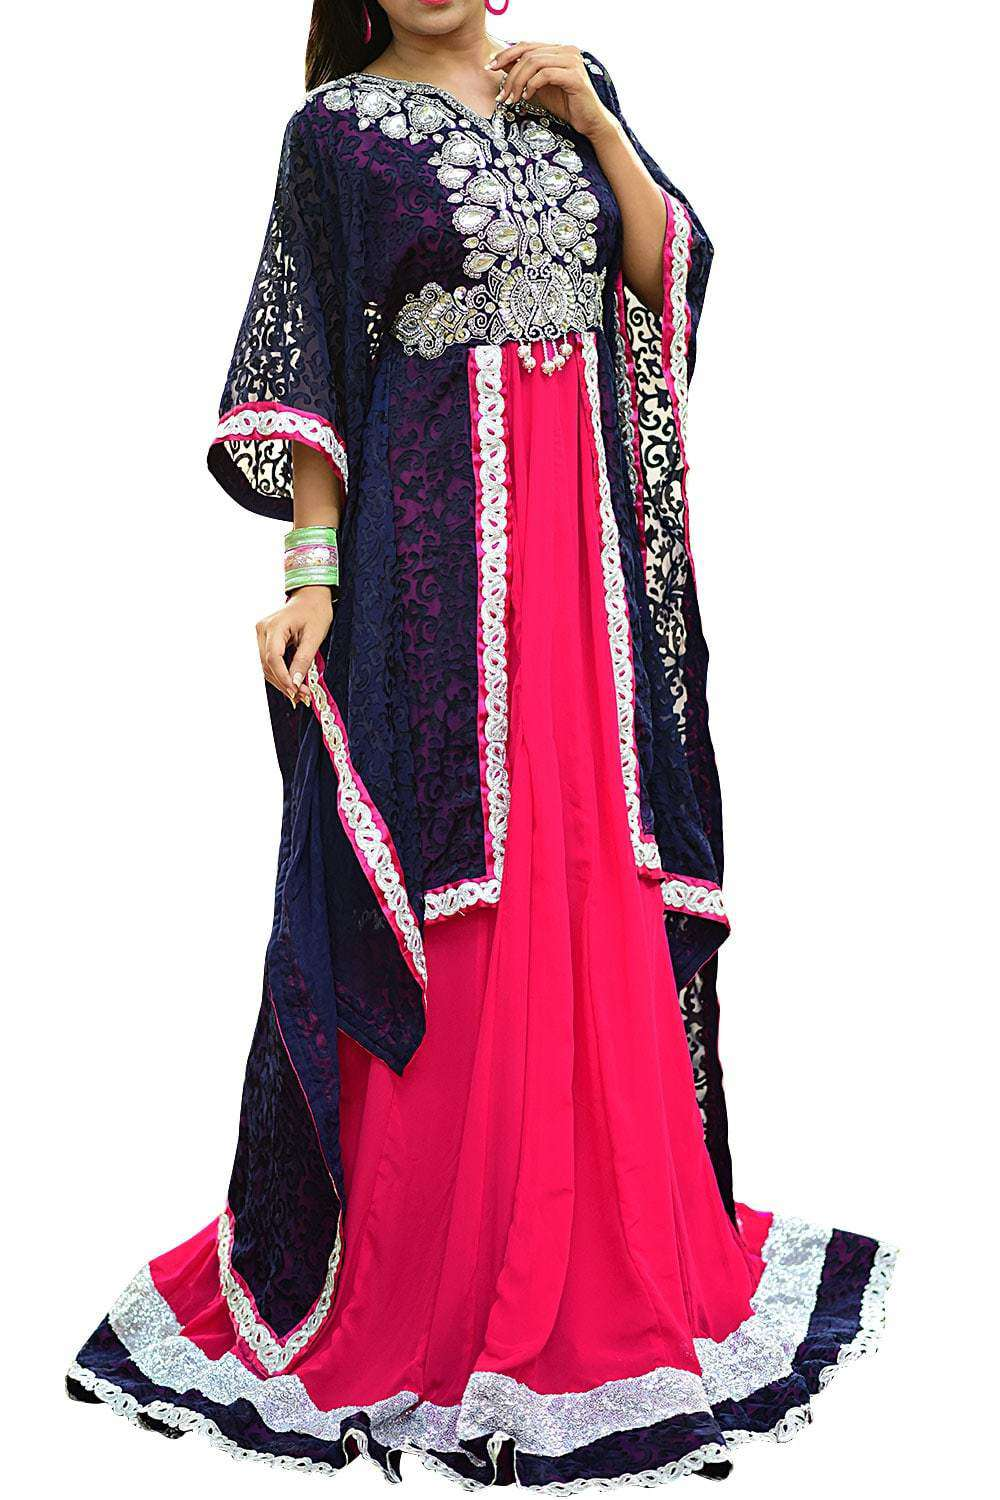 Vivacious Pink and Blue Georgette Kaftan Dress - Exclusive Fancy Dubai Caftan